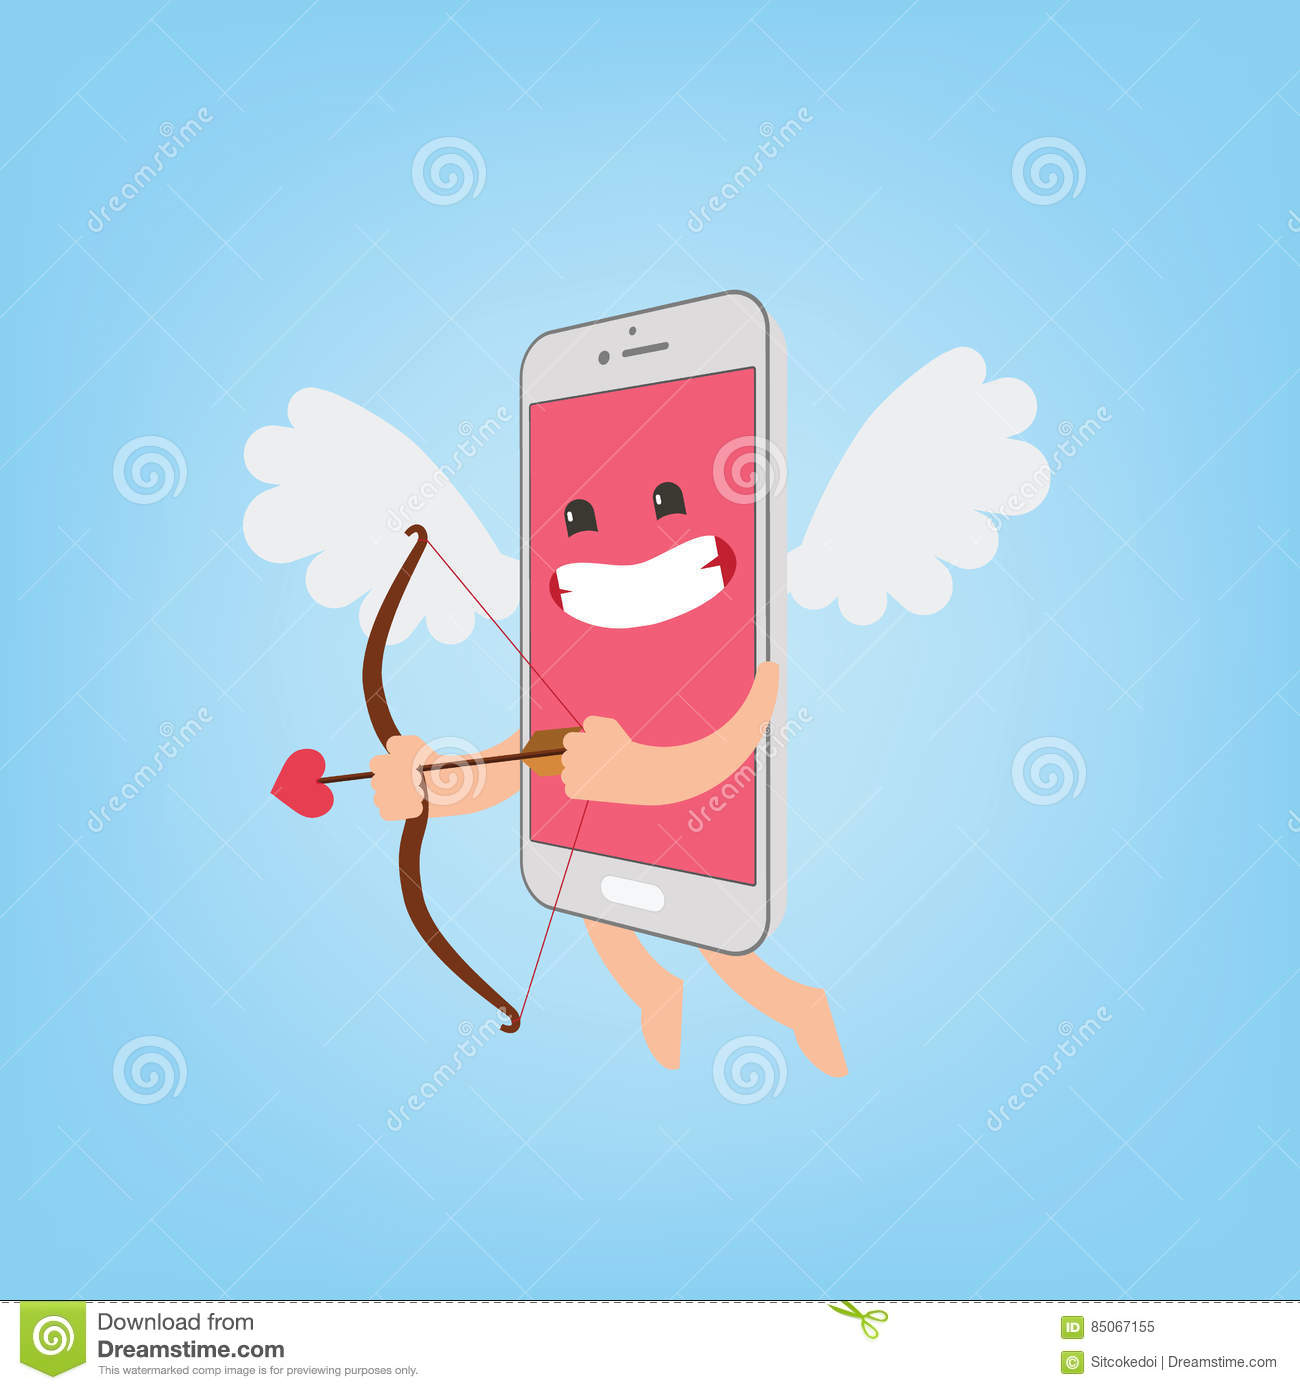 Cupid connections